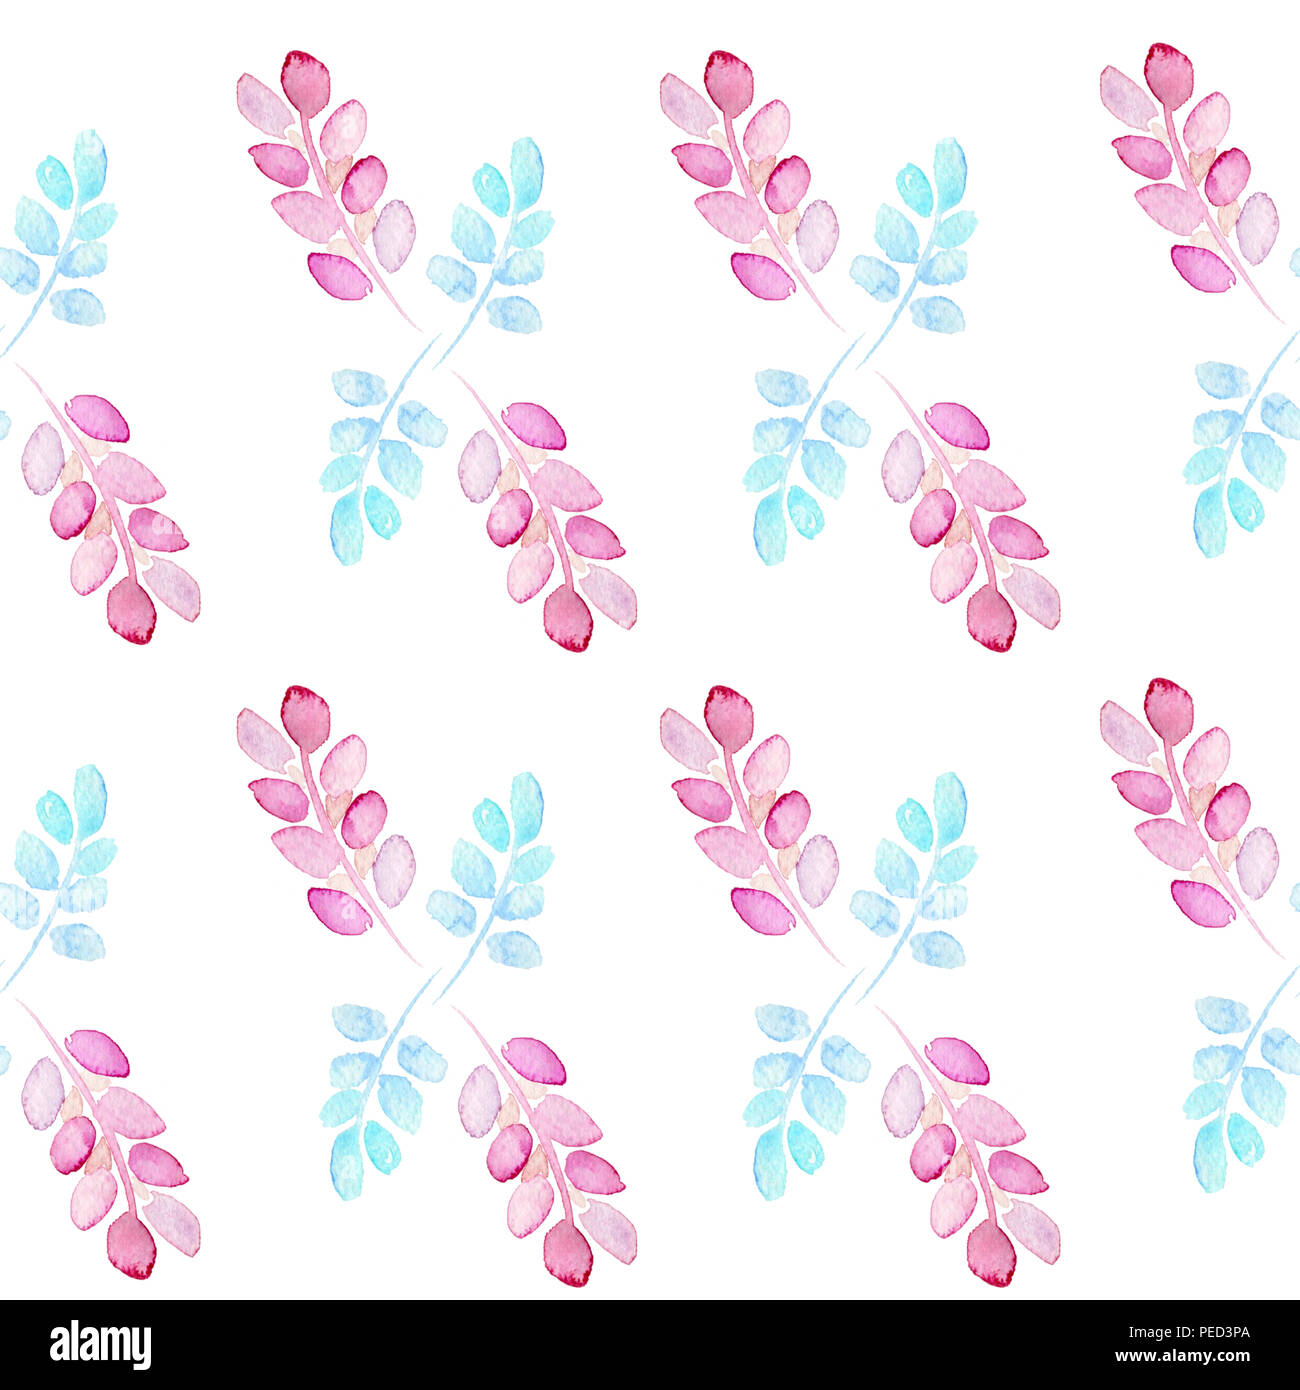 abstract watercolor flowers stock